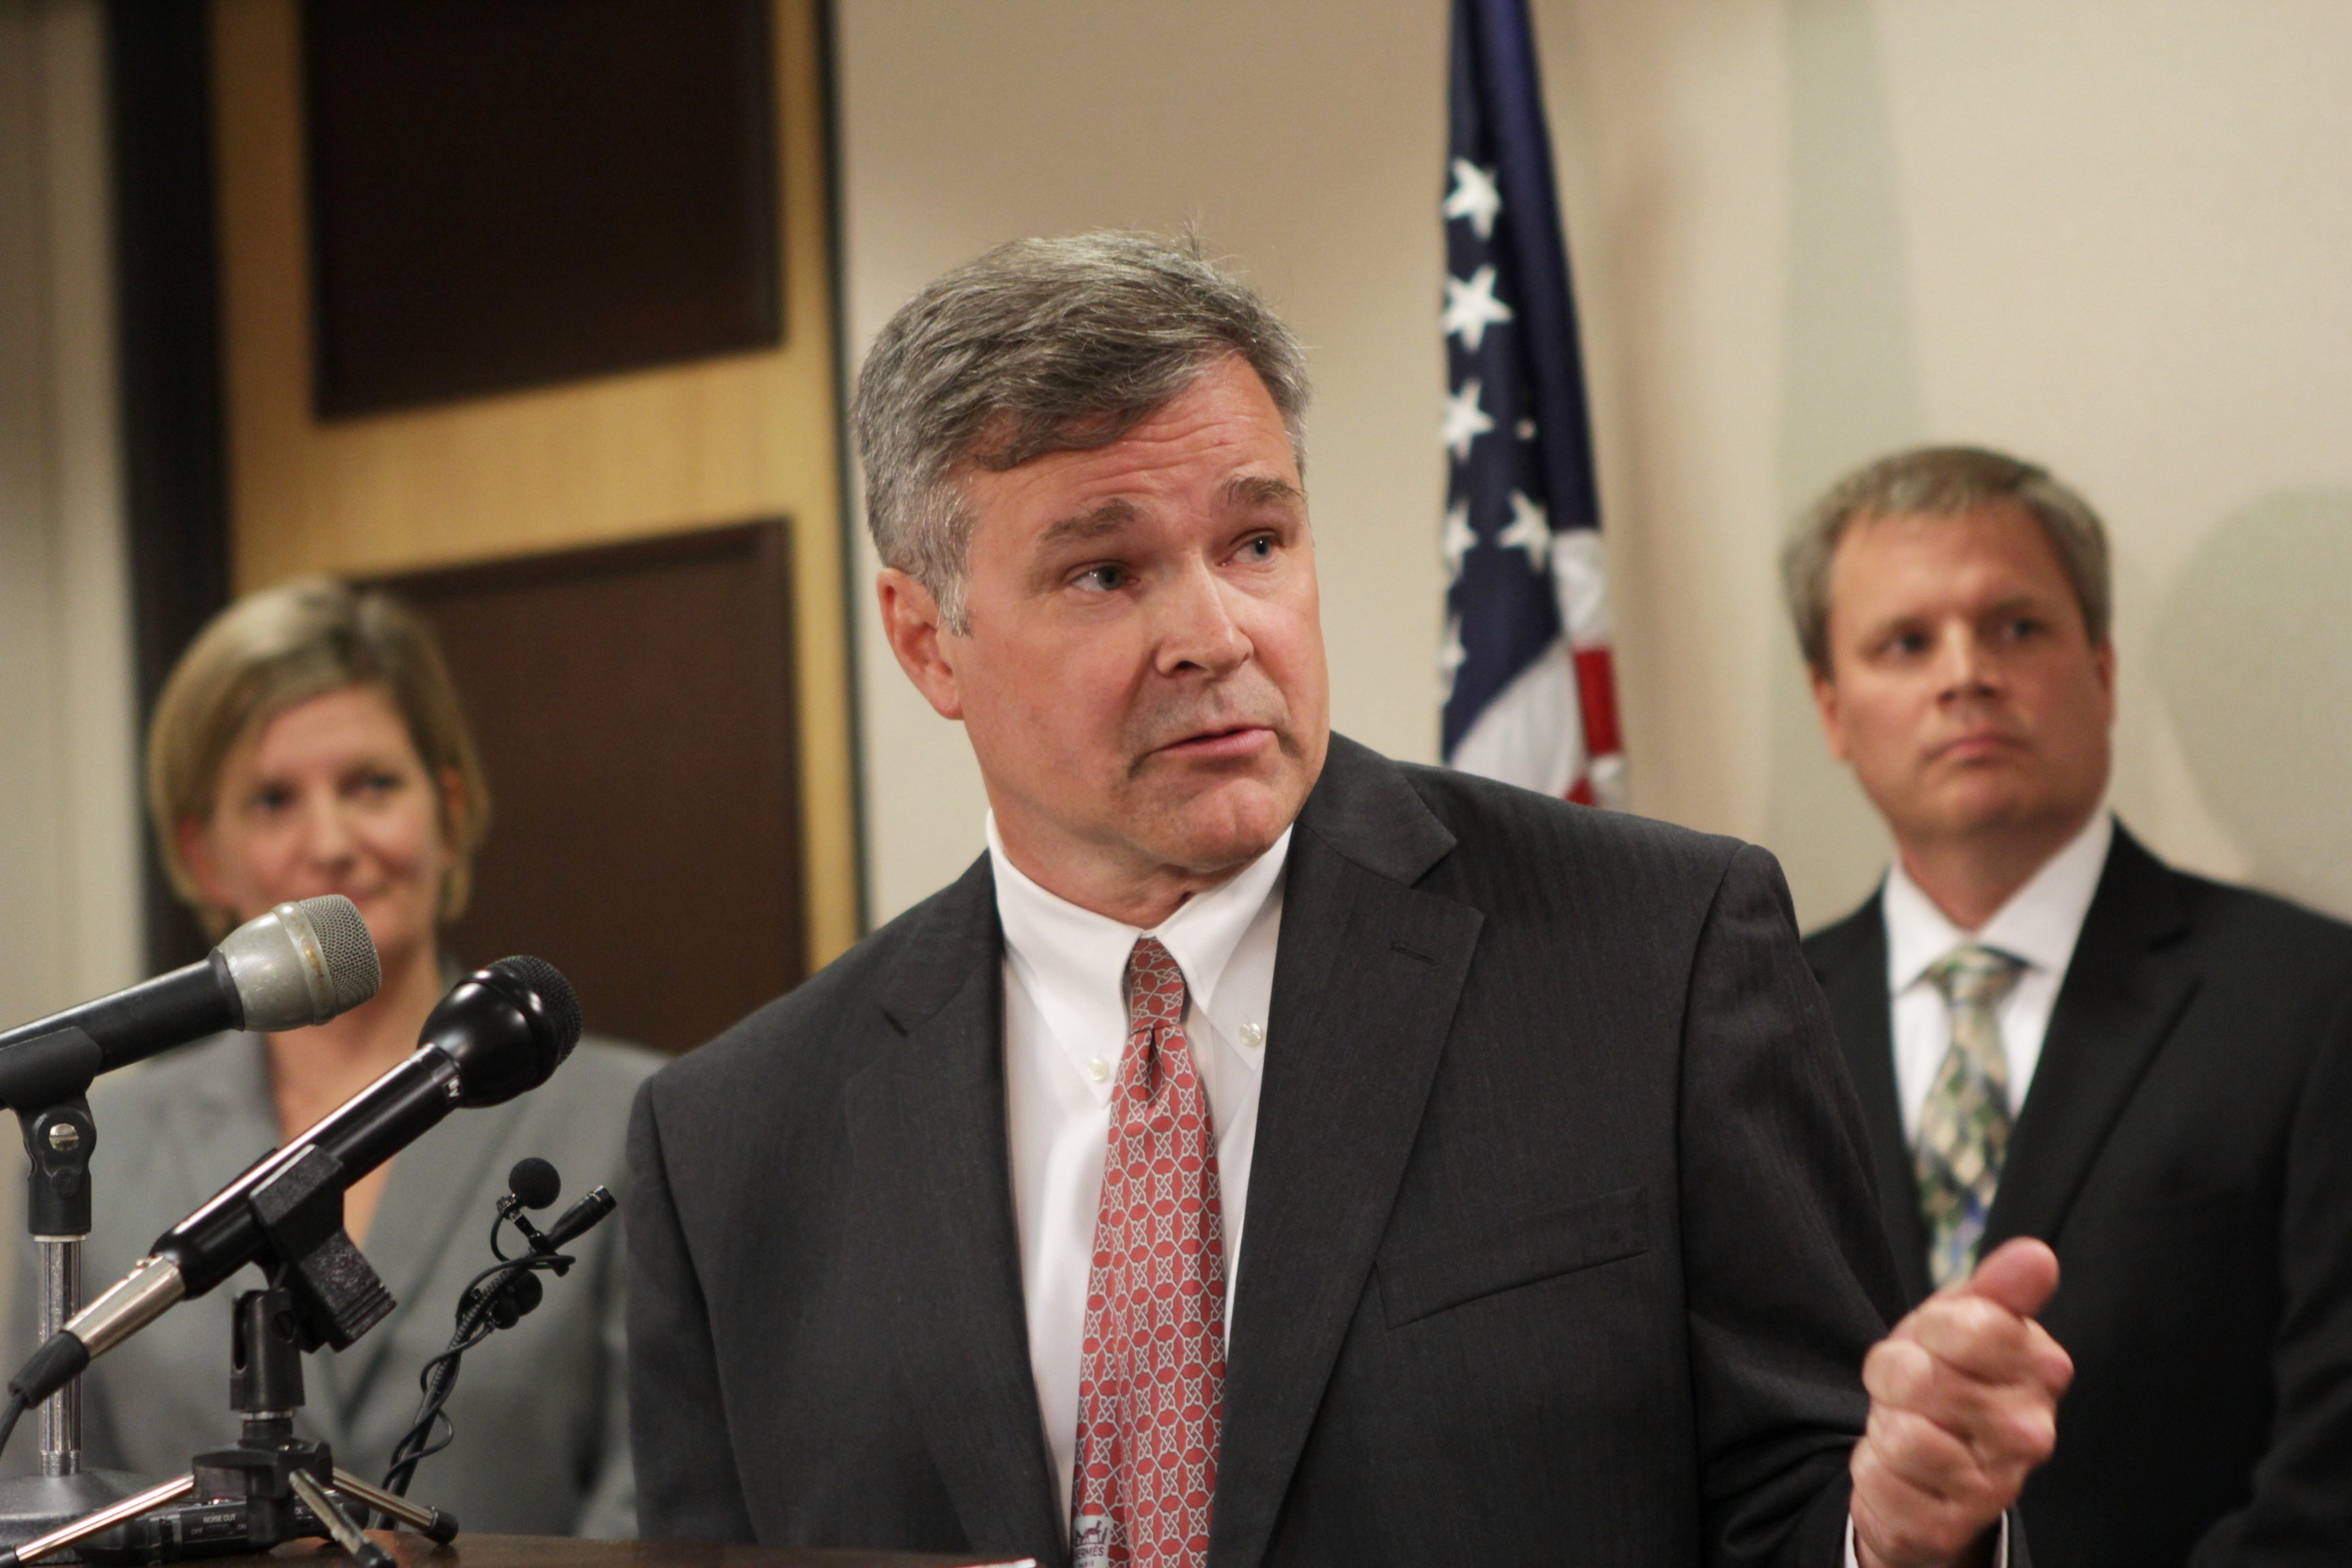 Alaska Natural Resources Commissioner Andy Mack at a press conference in Anchorage on June 28, 2016. (Photo by Graelyn Brashear, Alaska Public Media - Anchorage)